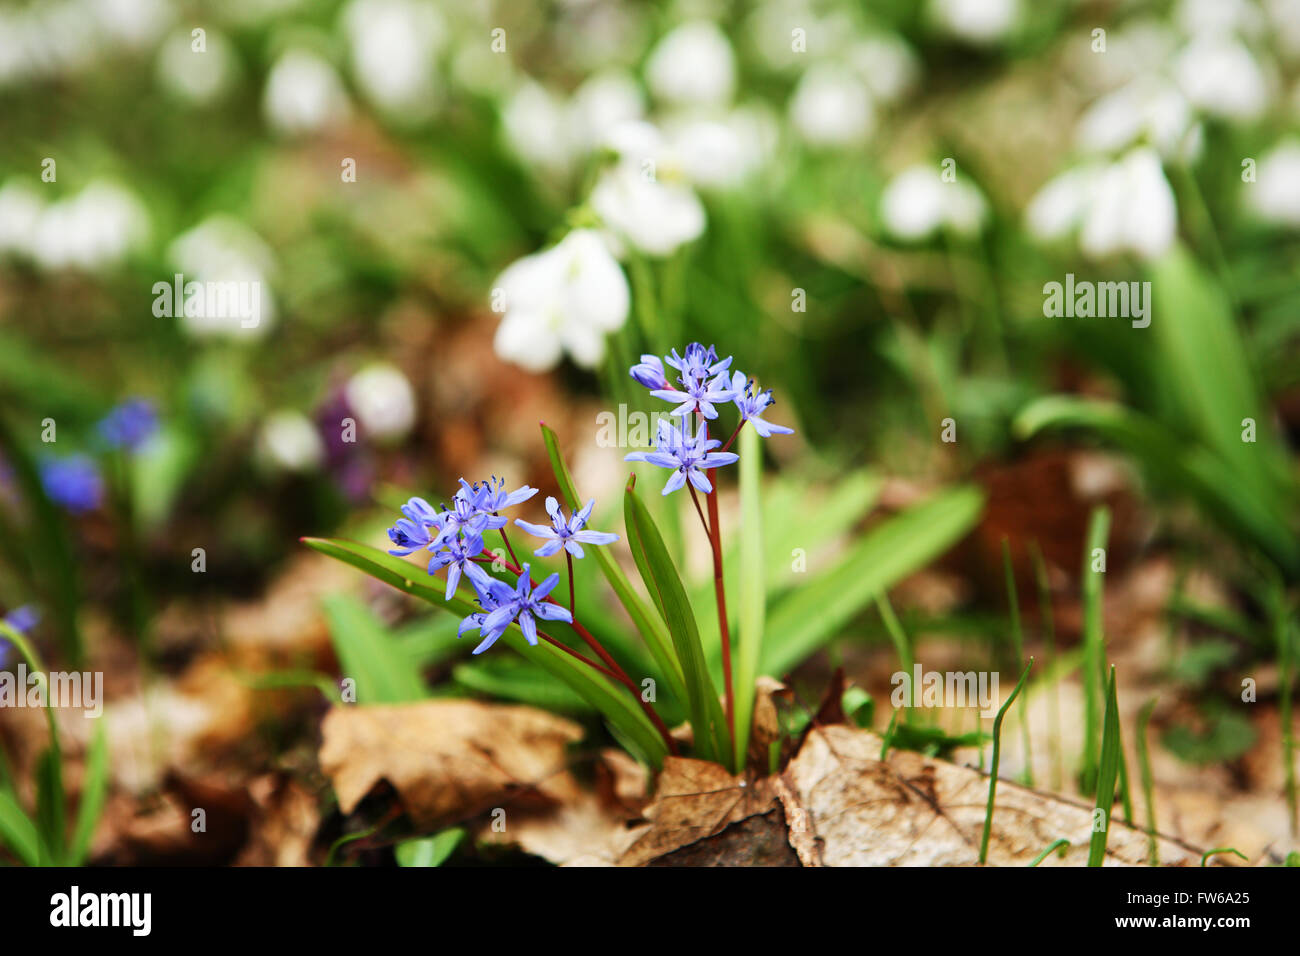 Two Leaf Squill First Flower Of Spring Stock Photo Royalty Free